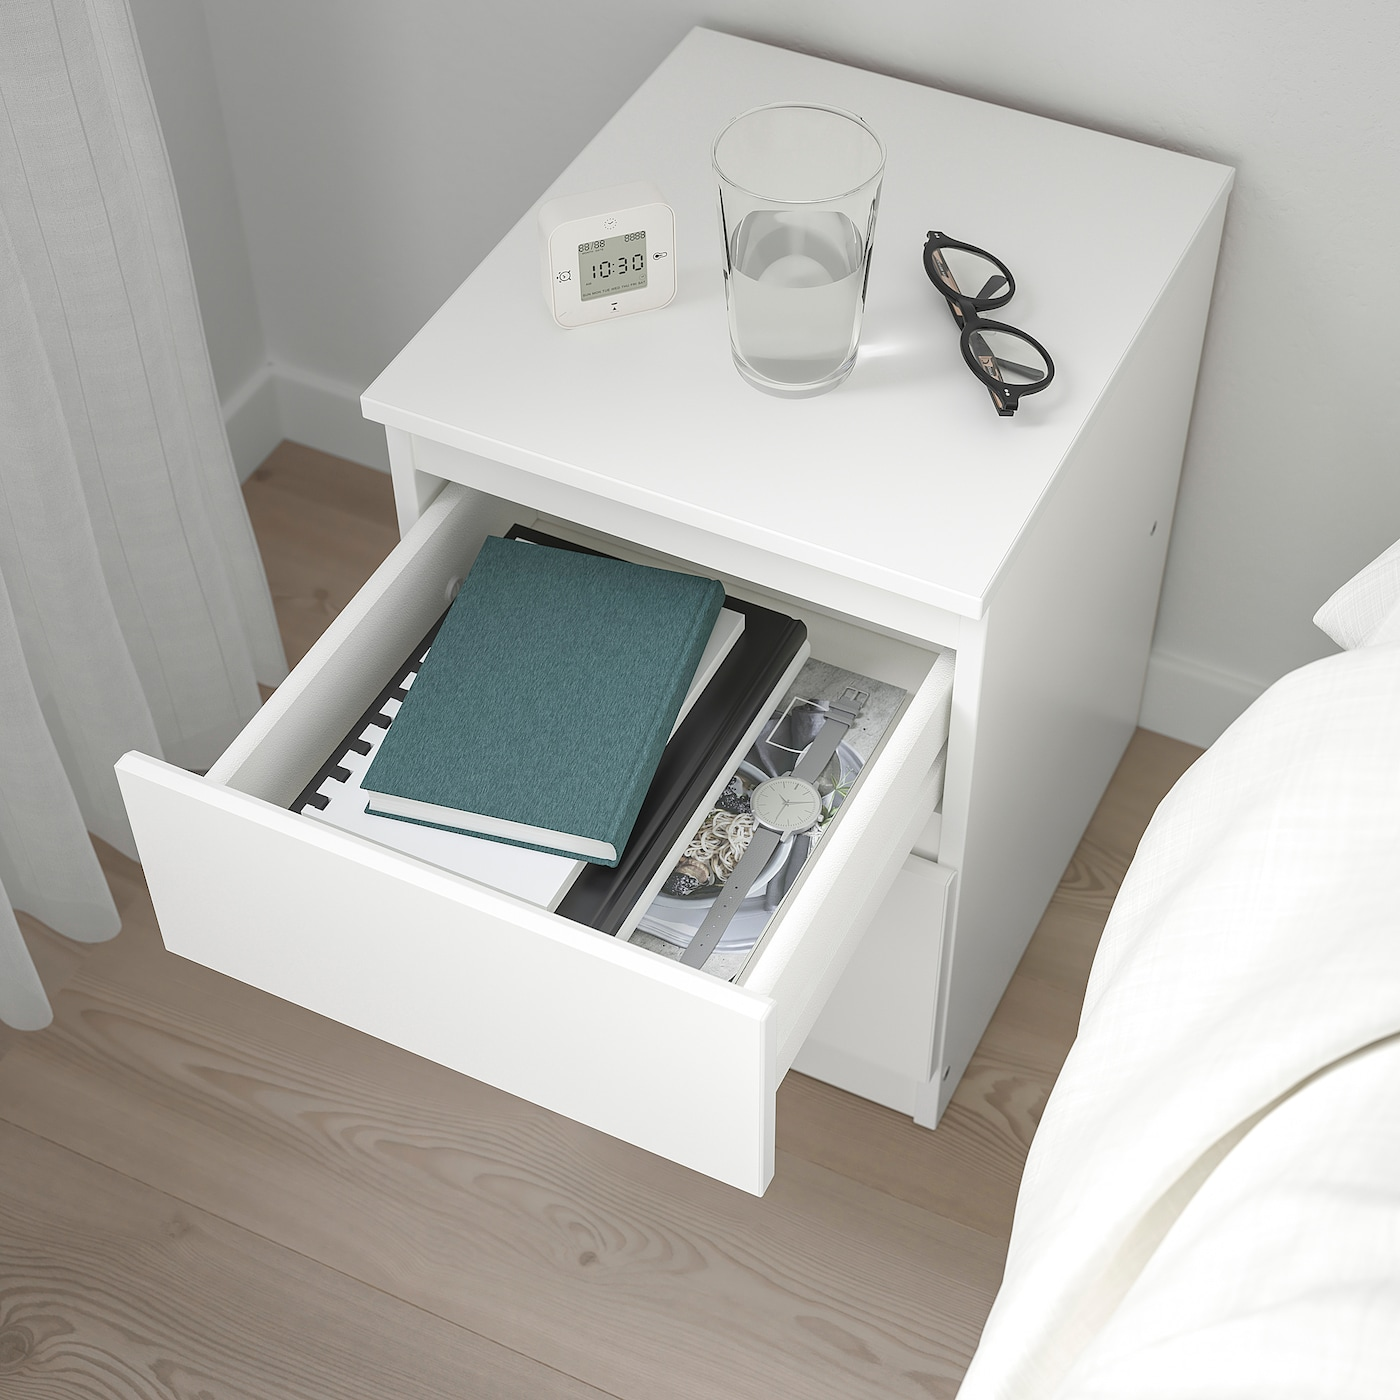 How to install Bed Side Table Kullen